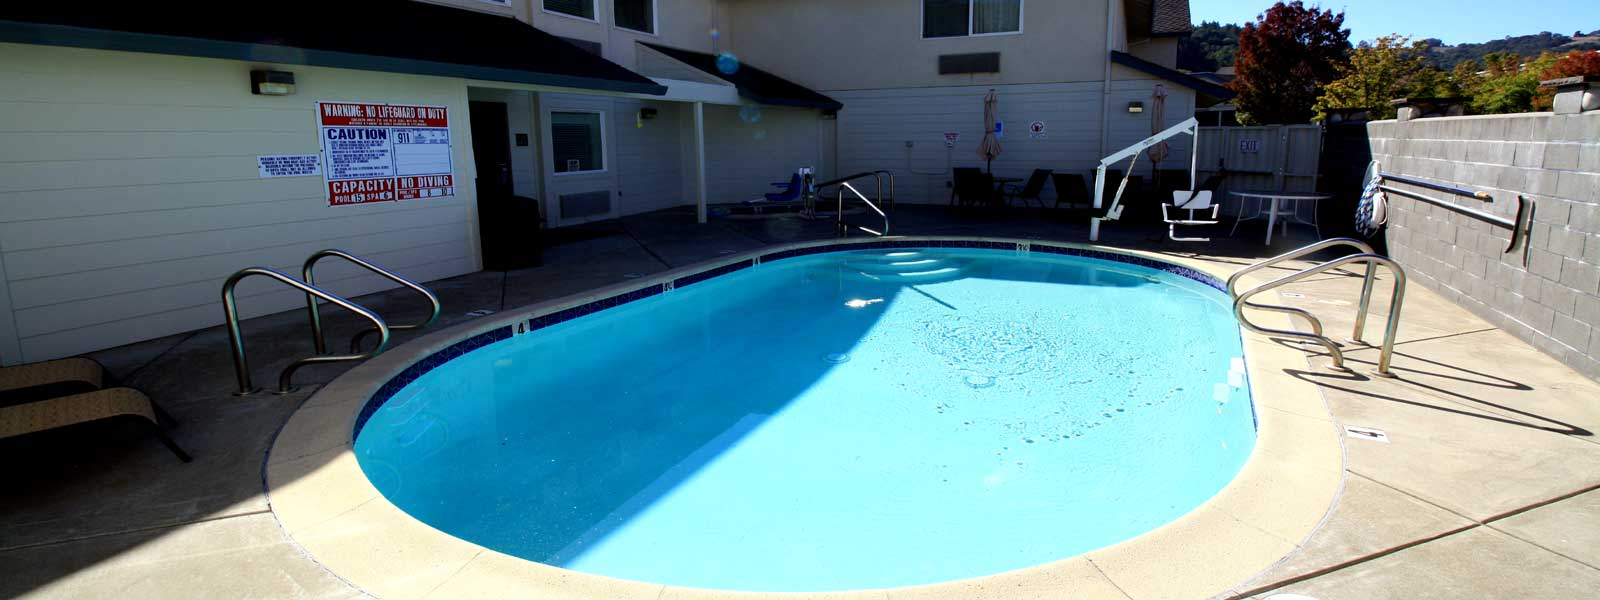 Motels in Cloverdale Budget Discount 3 Star Rating